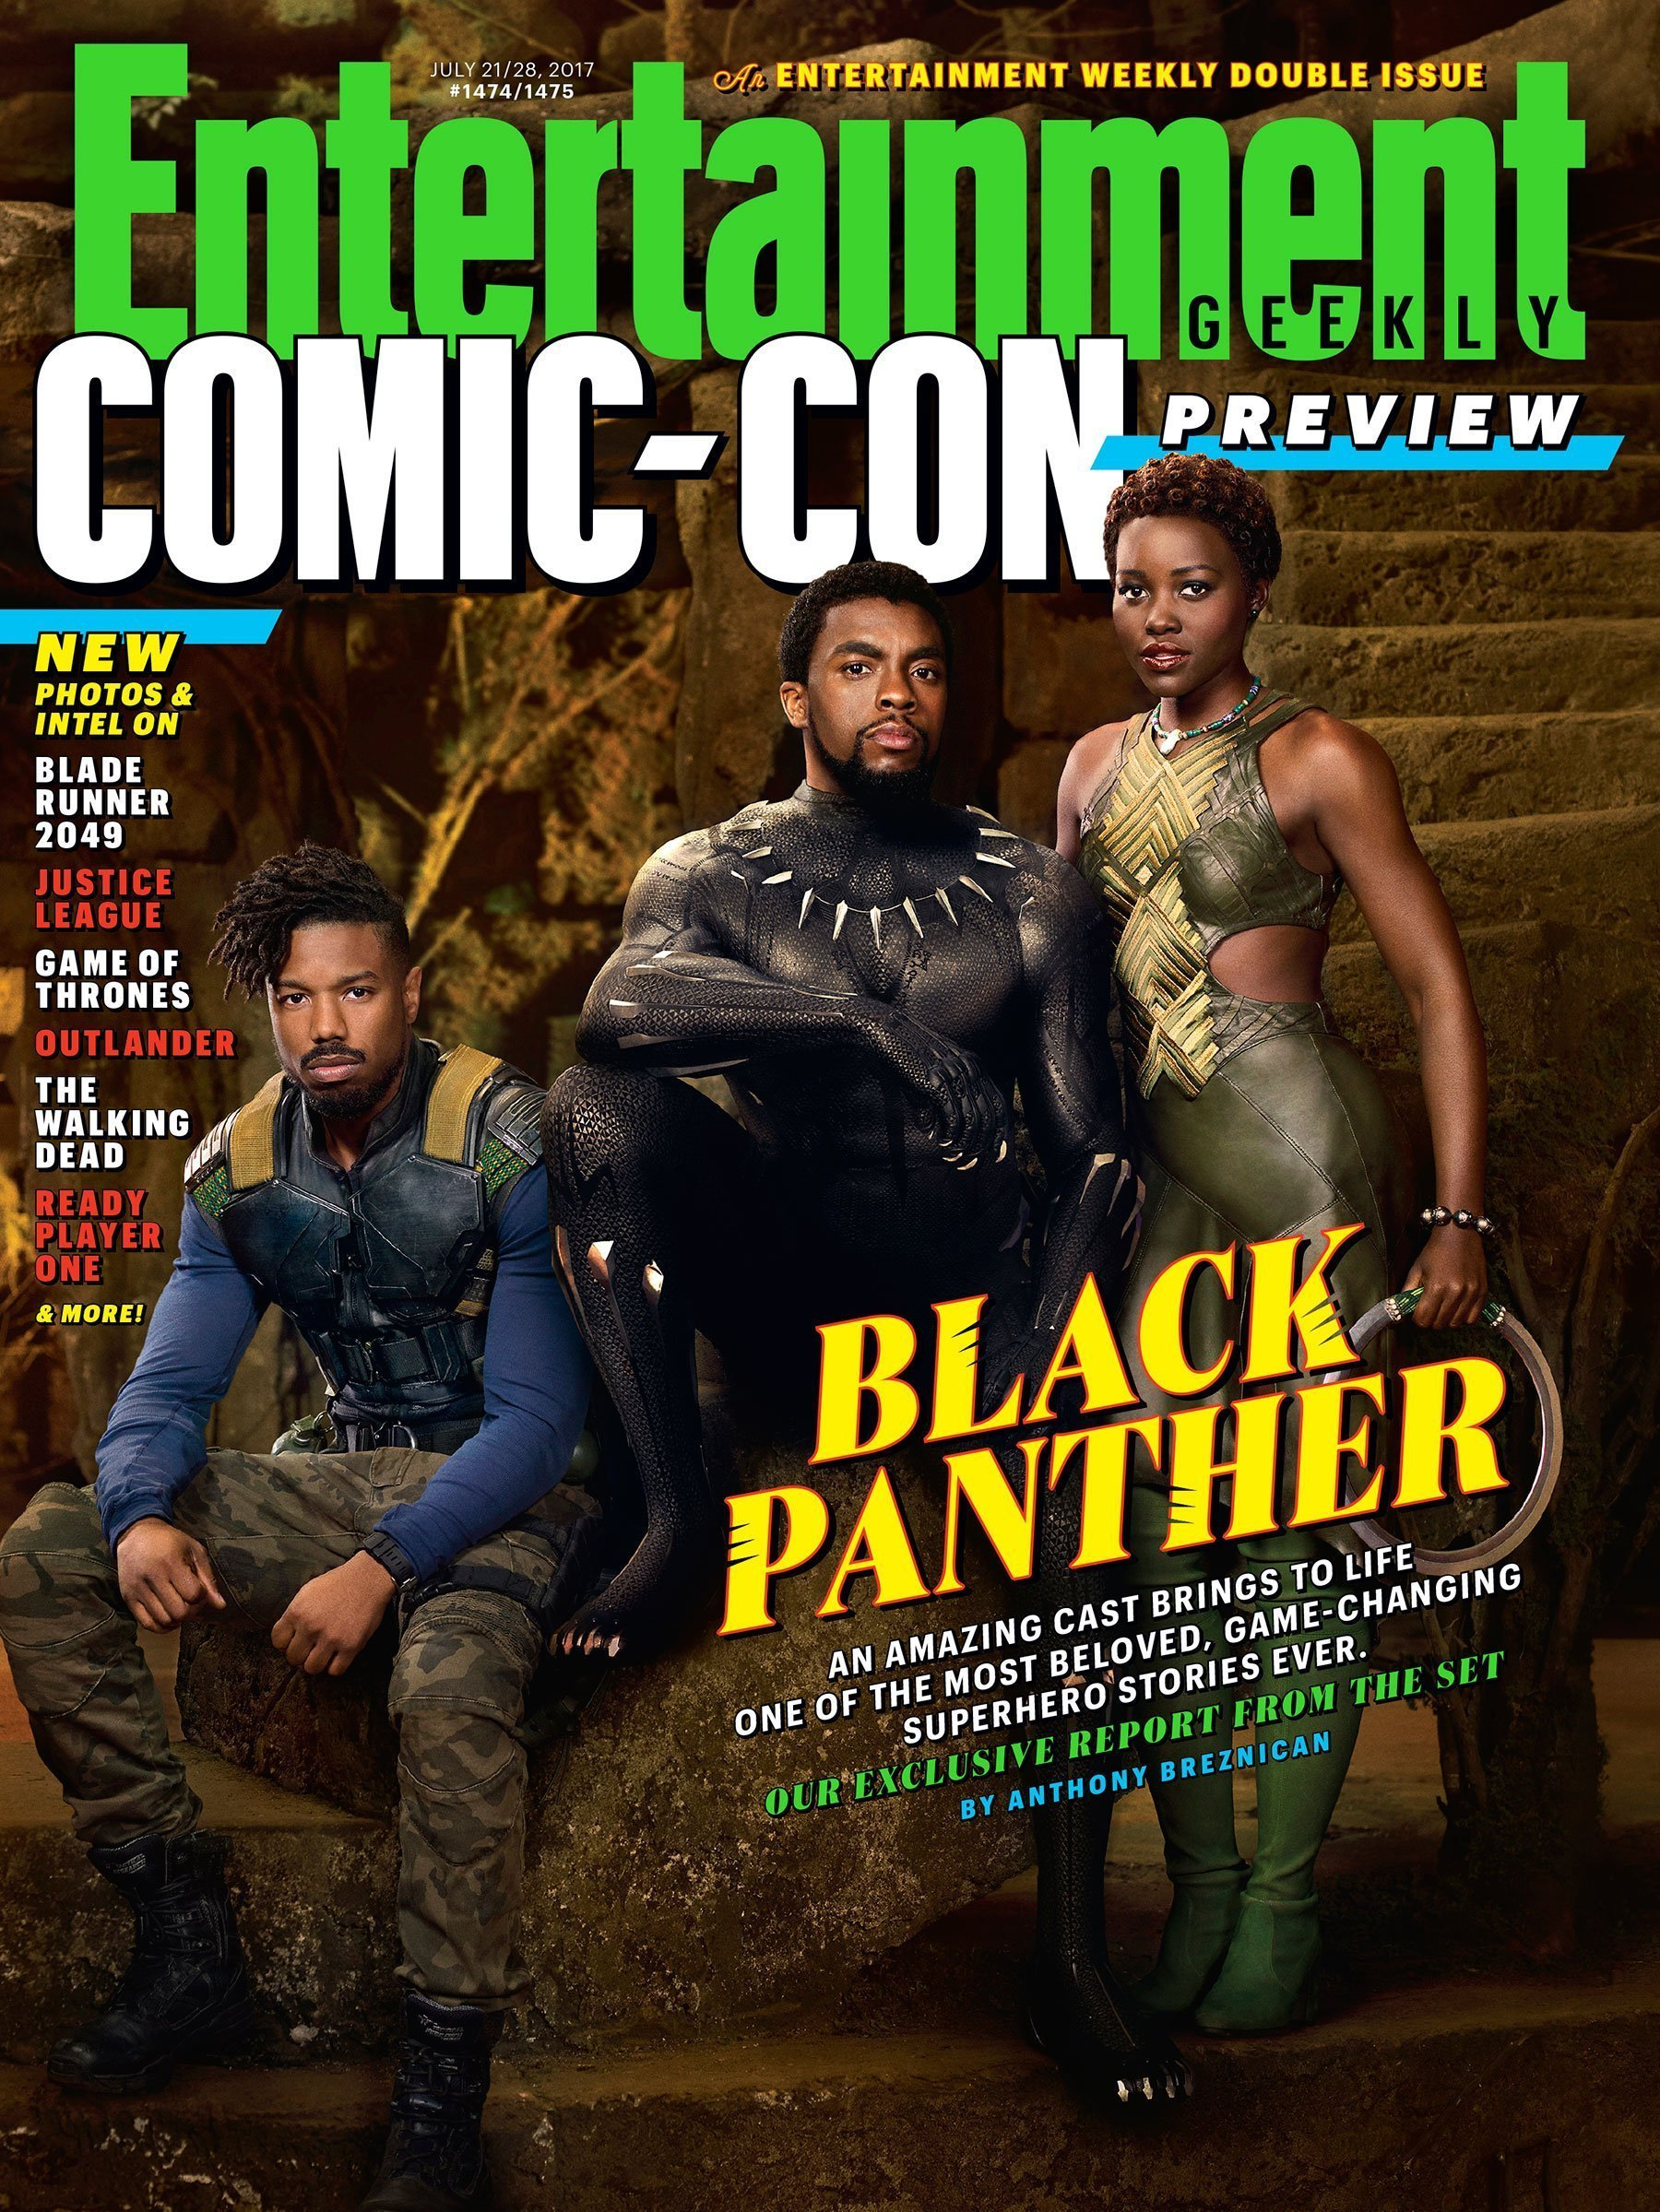 Couverture d'Entertainment Weekly avec Black Panther